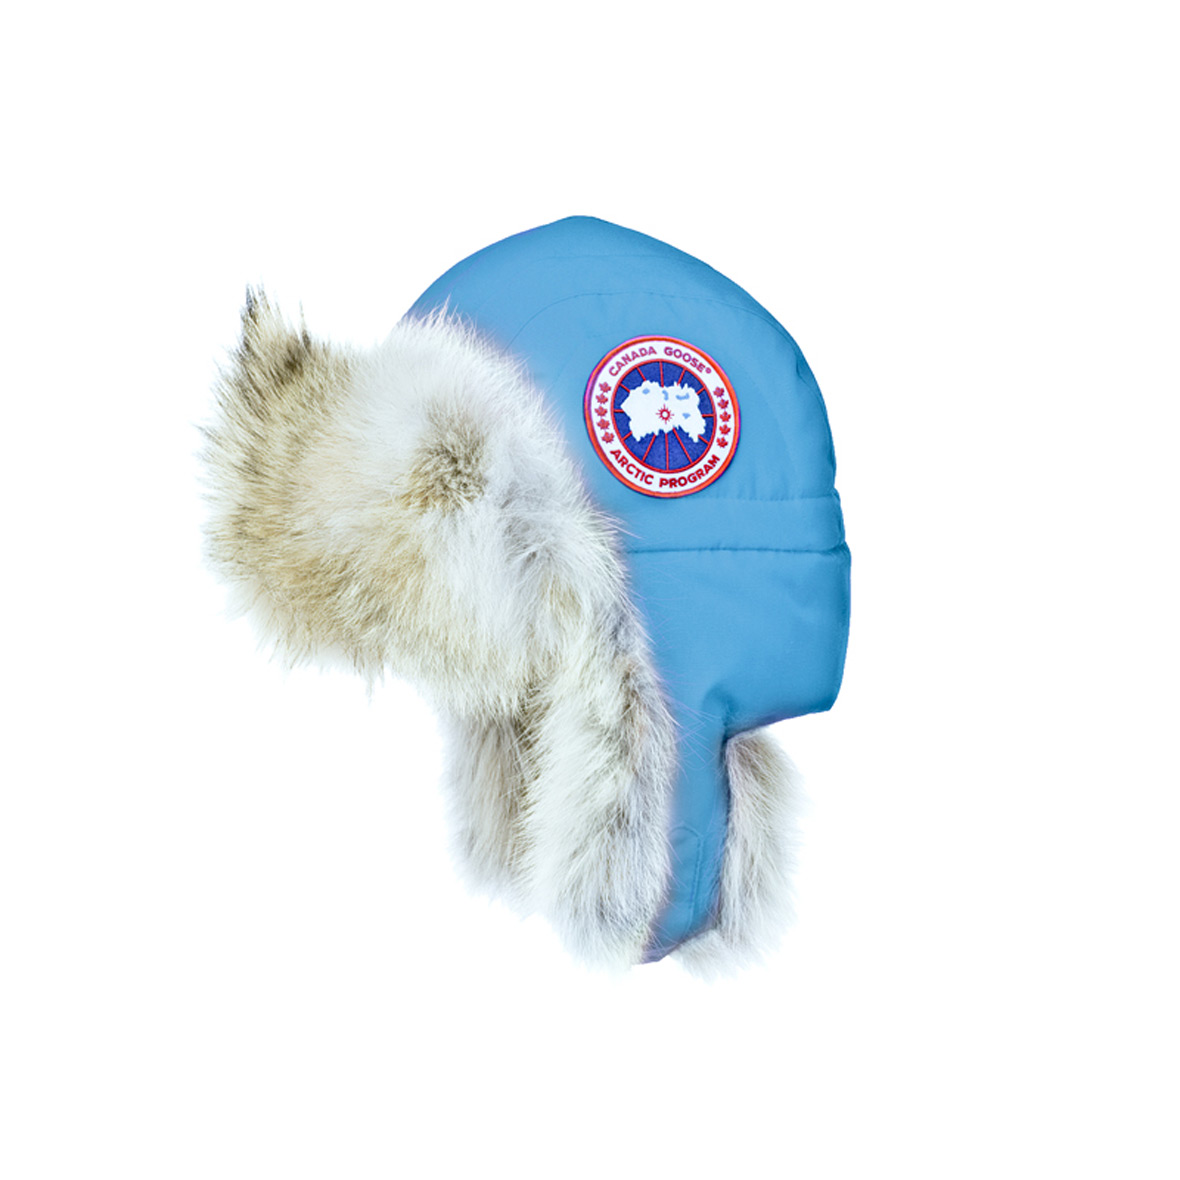 Canada Goose Unisex Aviator Hat BLUE TOPAZ For Men